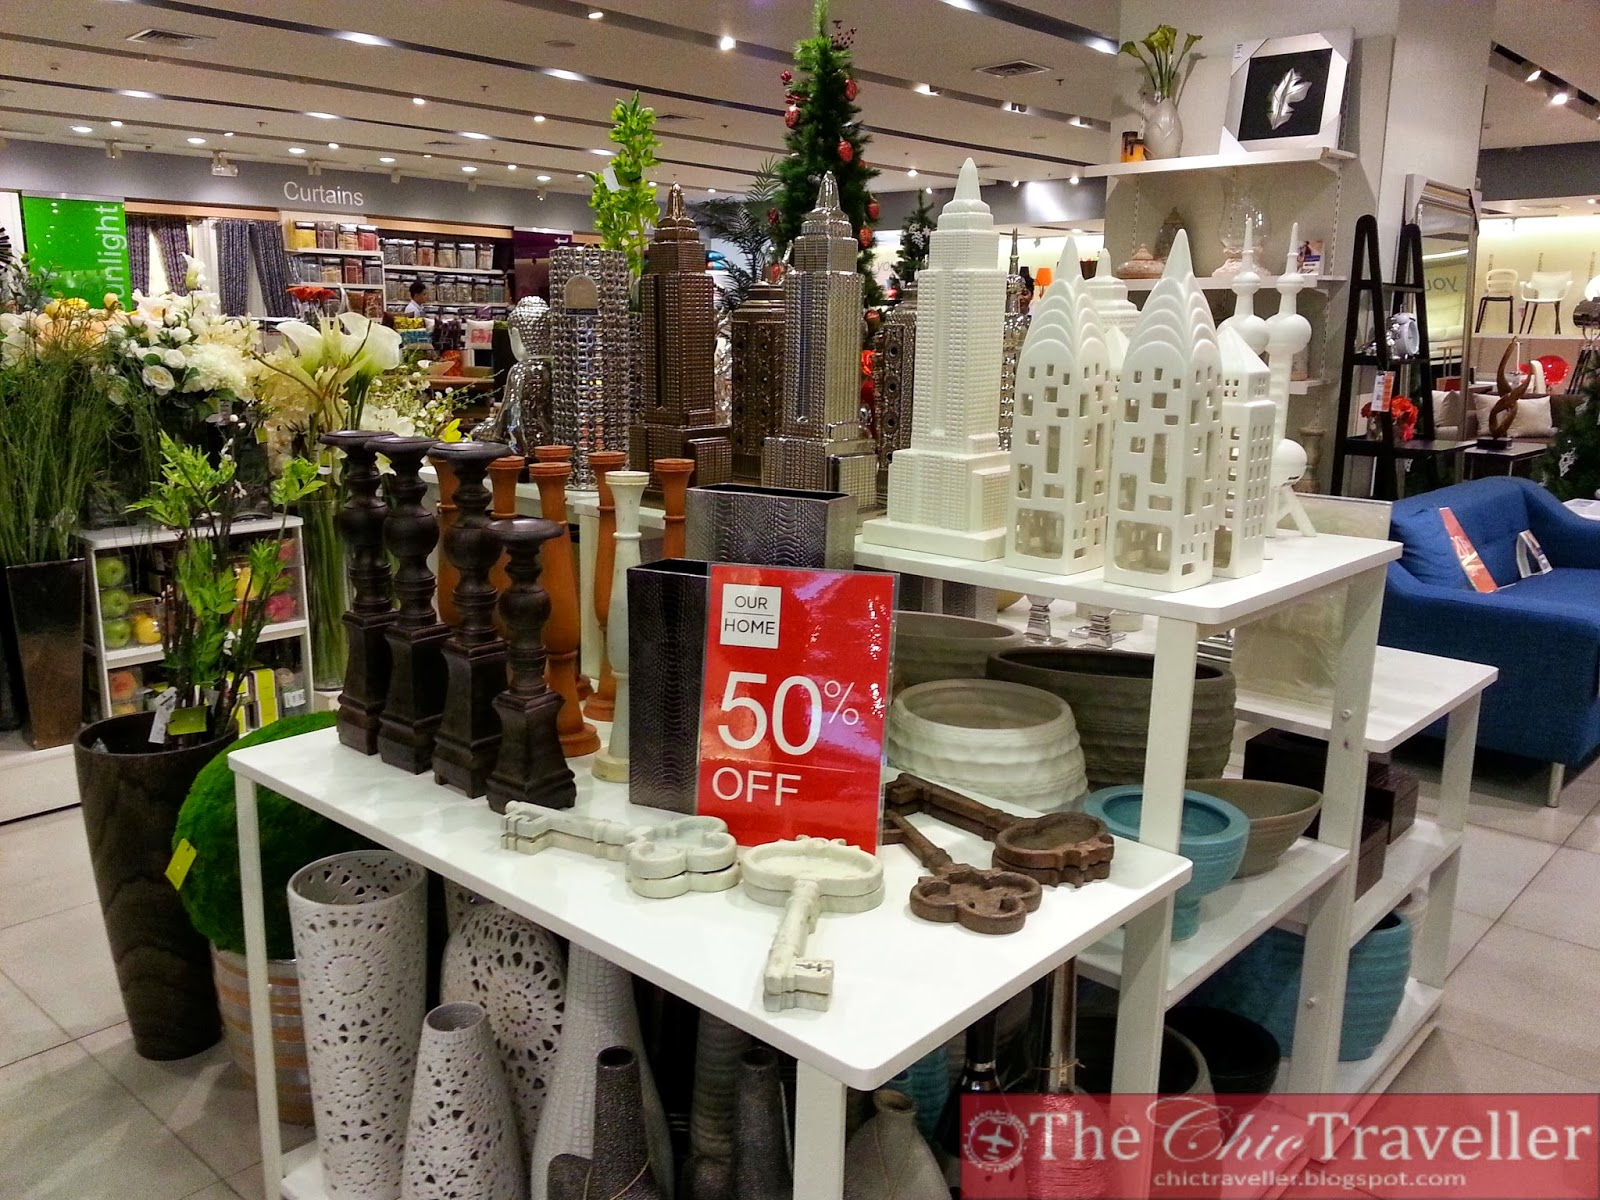 Our Home   SM Southmall. The Chic Mompreneur  Our Home   SM Southmall